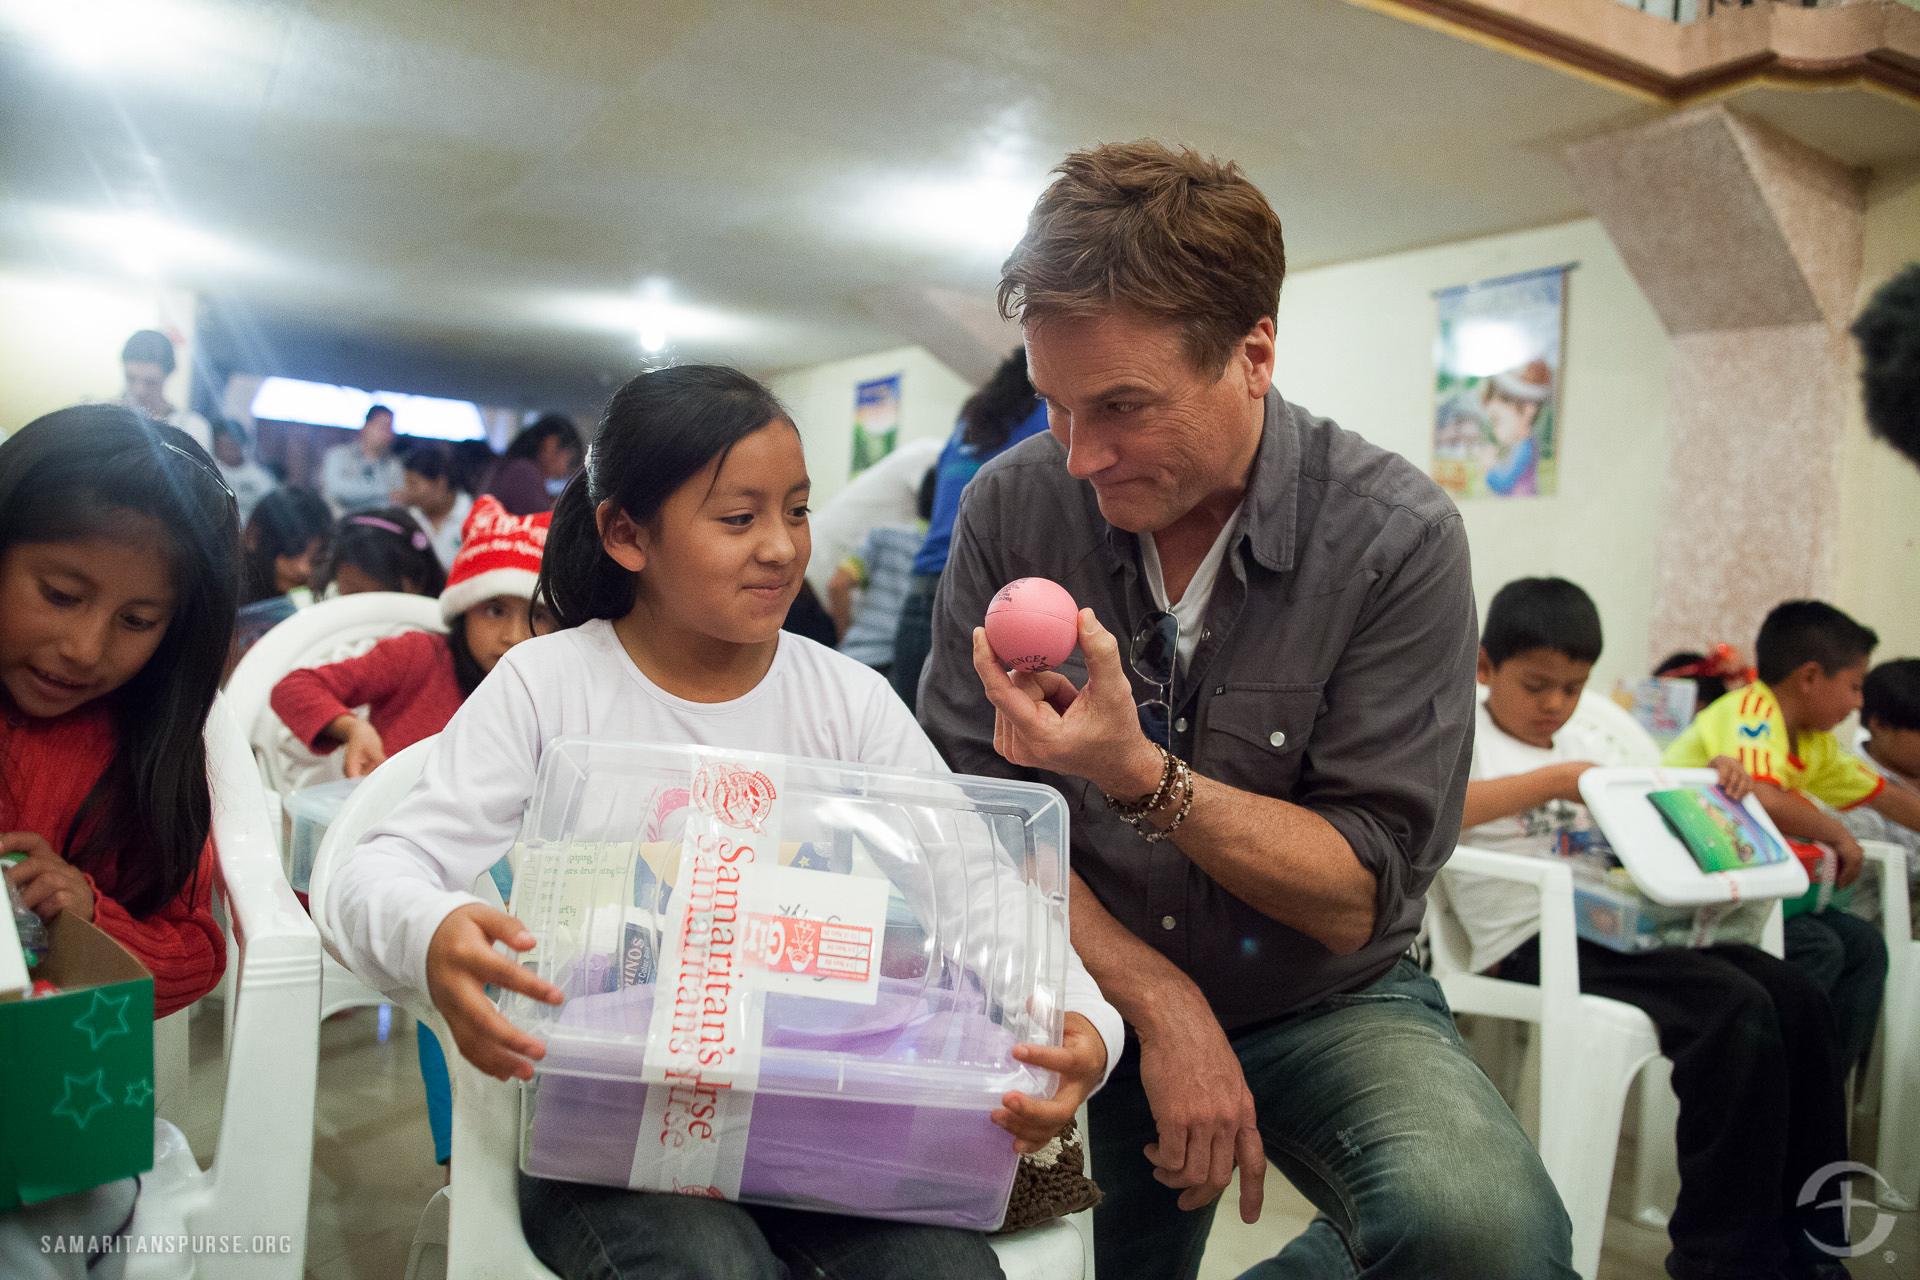 Michael W. Smith is a longtime friend of Samaritan's Purse, and a frequent performer at Franklin Graham Festivals.